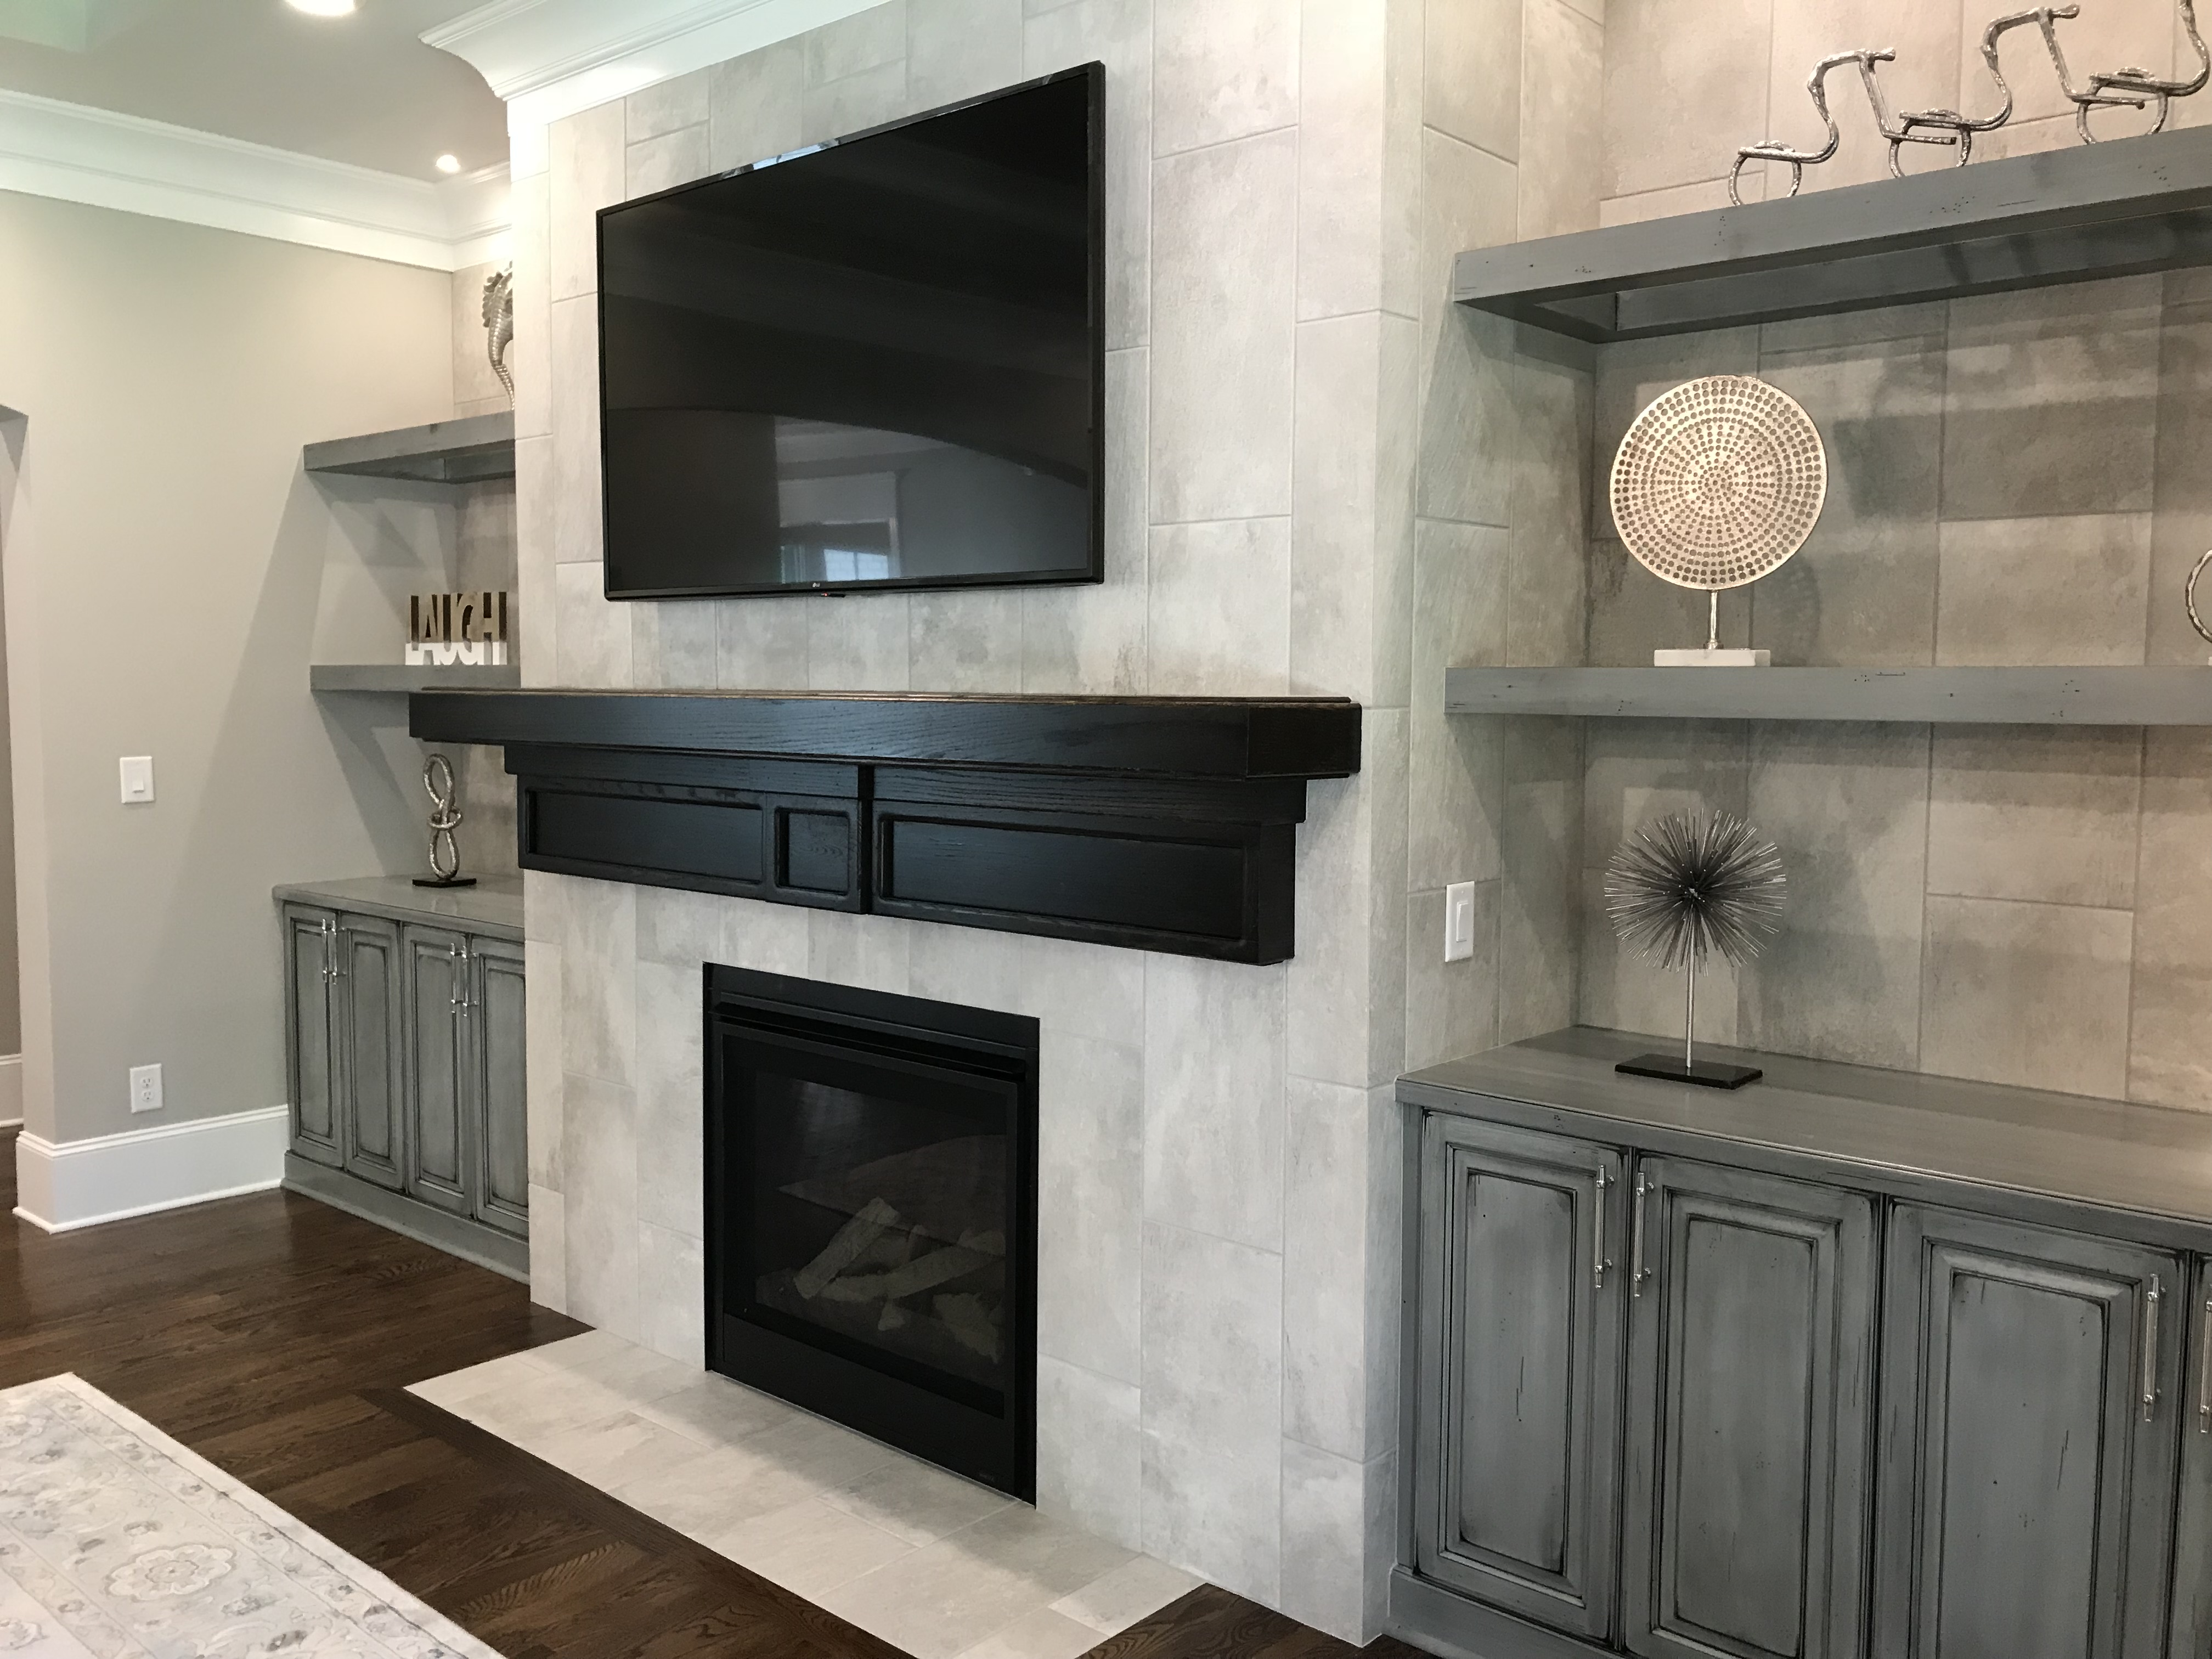 <div class='meta'><div class='origin-logo' data-origin='none'></div><span class='caption-text' data-credit='WTVD photo/Shawn Replogle'>Fireplace - 6506 New Market Way, Raleigh, NC - $1.25 million by Raleigh Custom Homes</span></div>